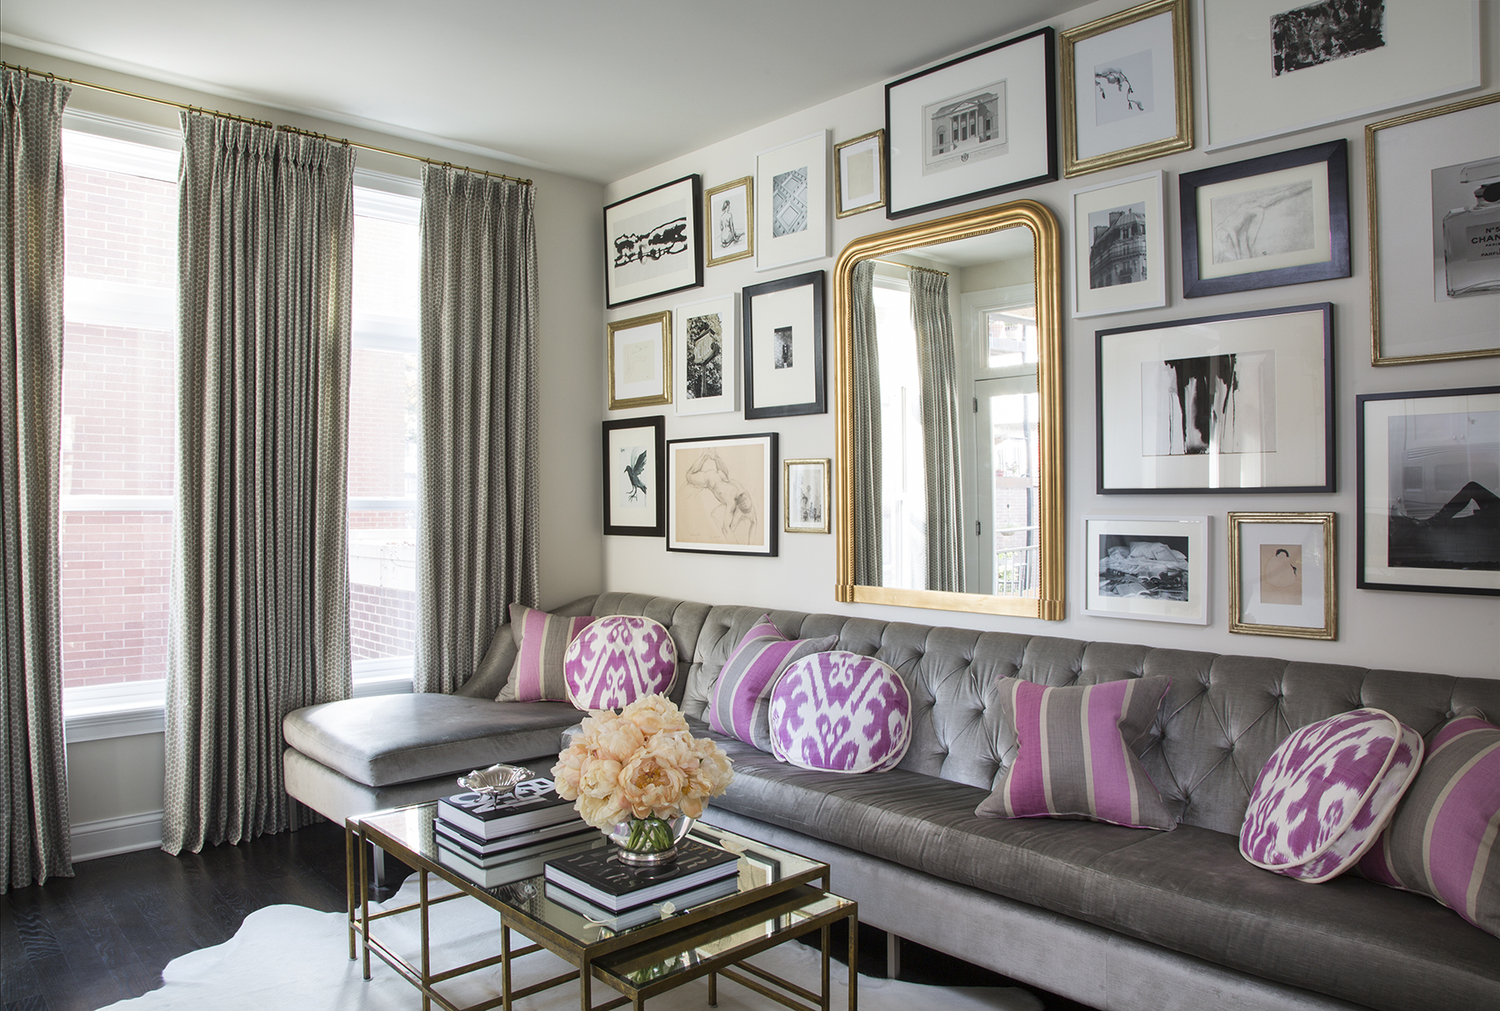 wendy labrum Wendy Labrum Interiors: A Passion Born in Europe Widdess FamilyRoom LR